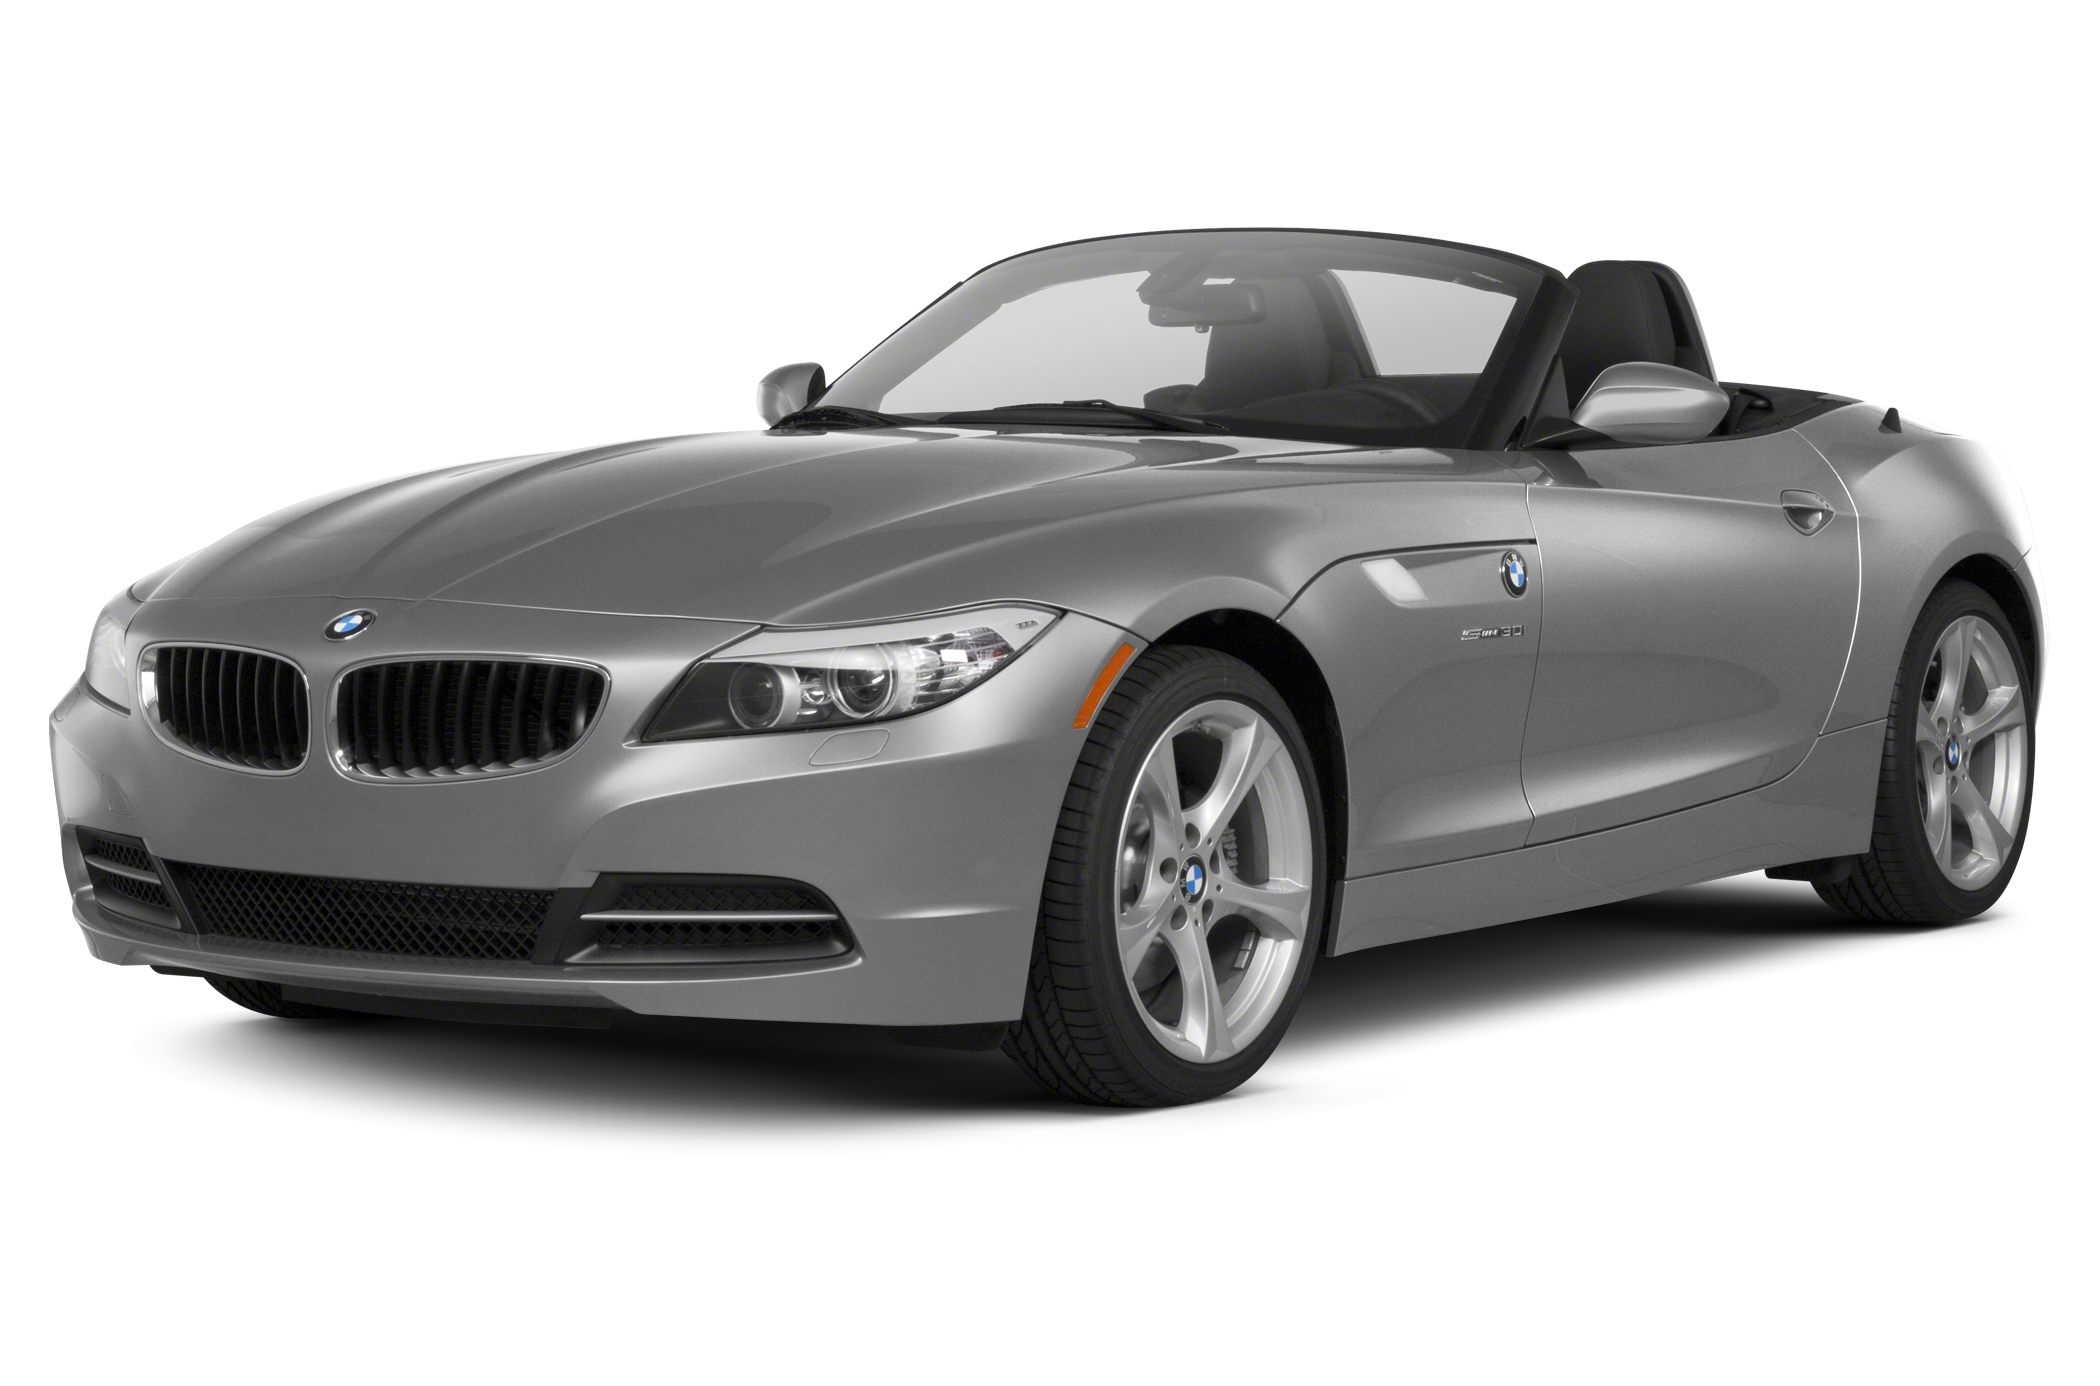 2013 BMW Z4 Specs and Prices